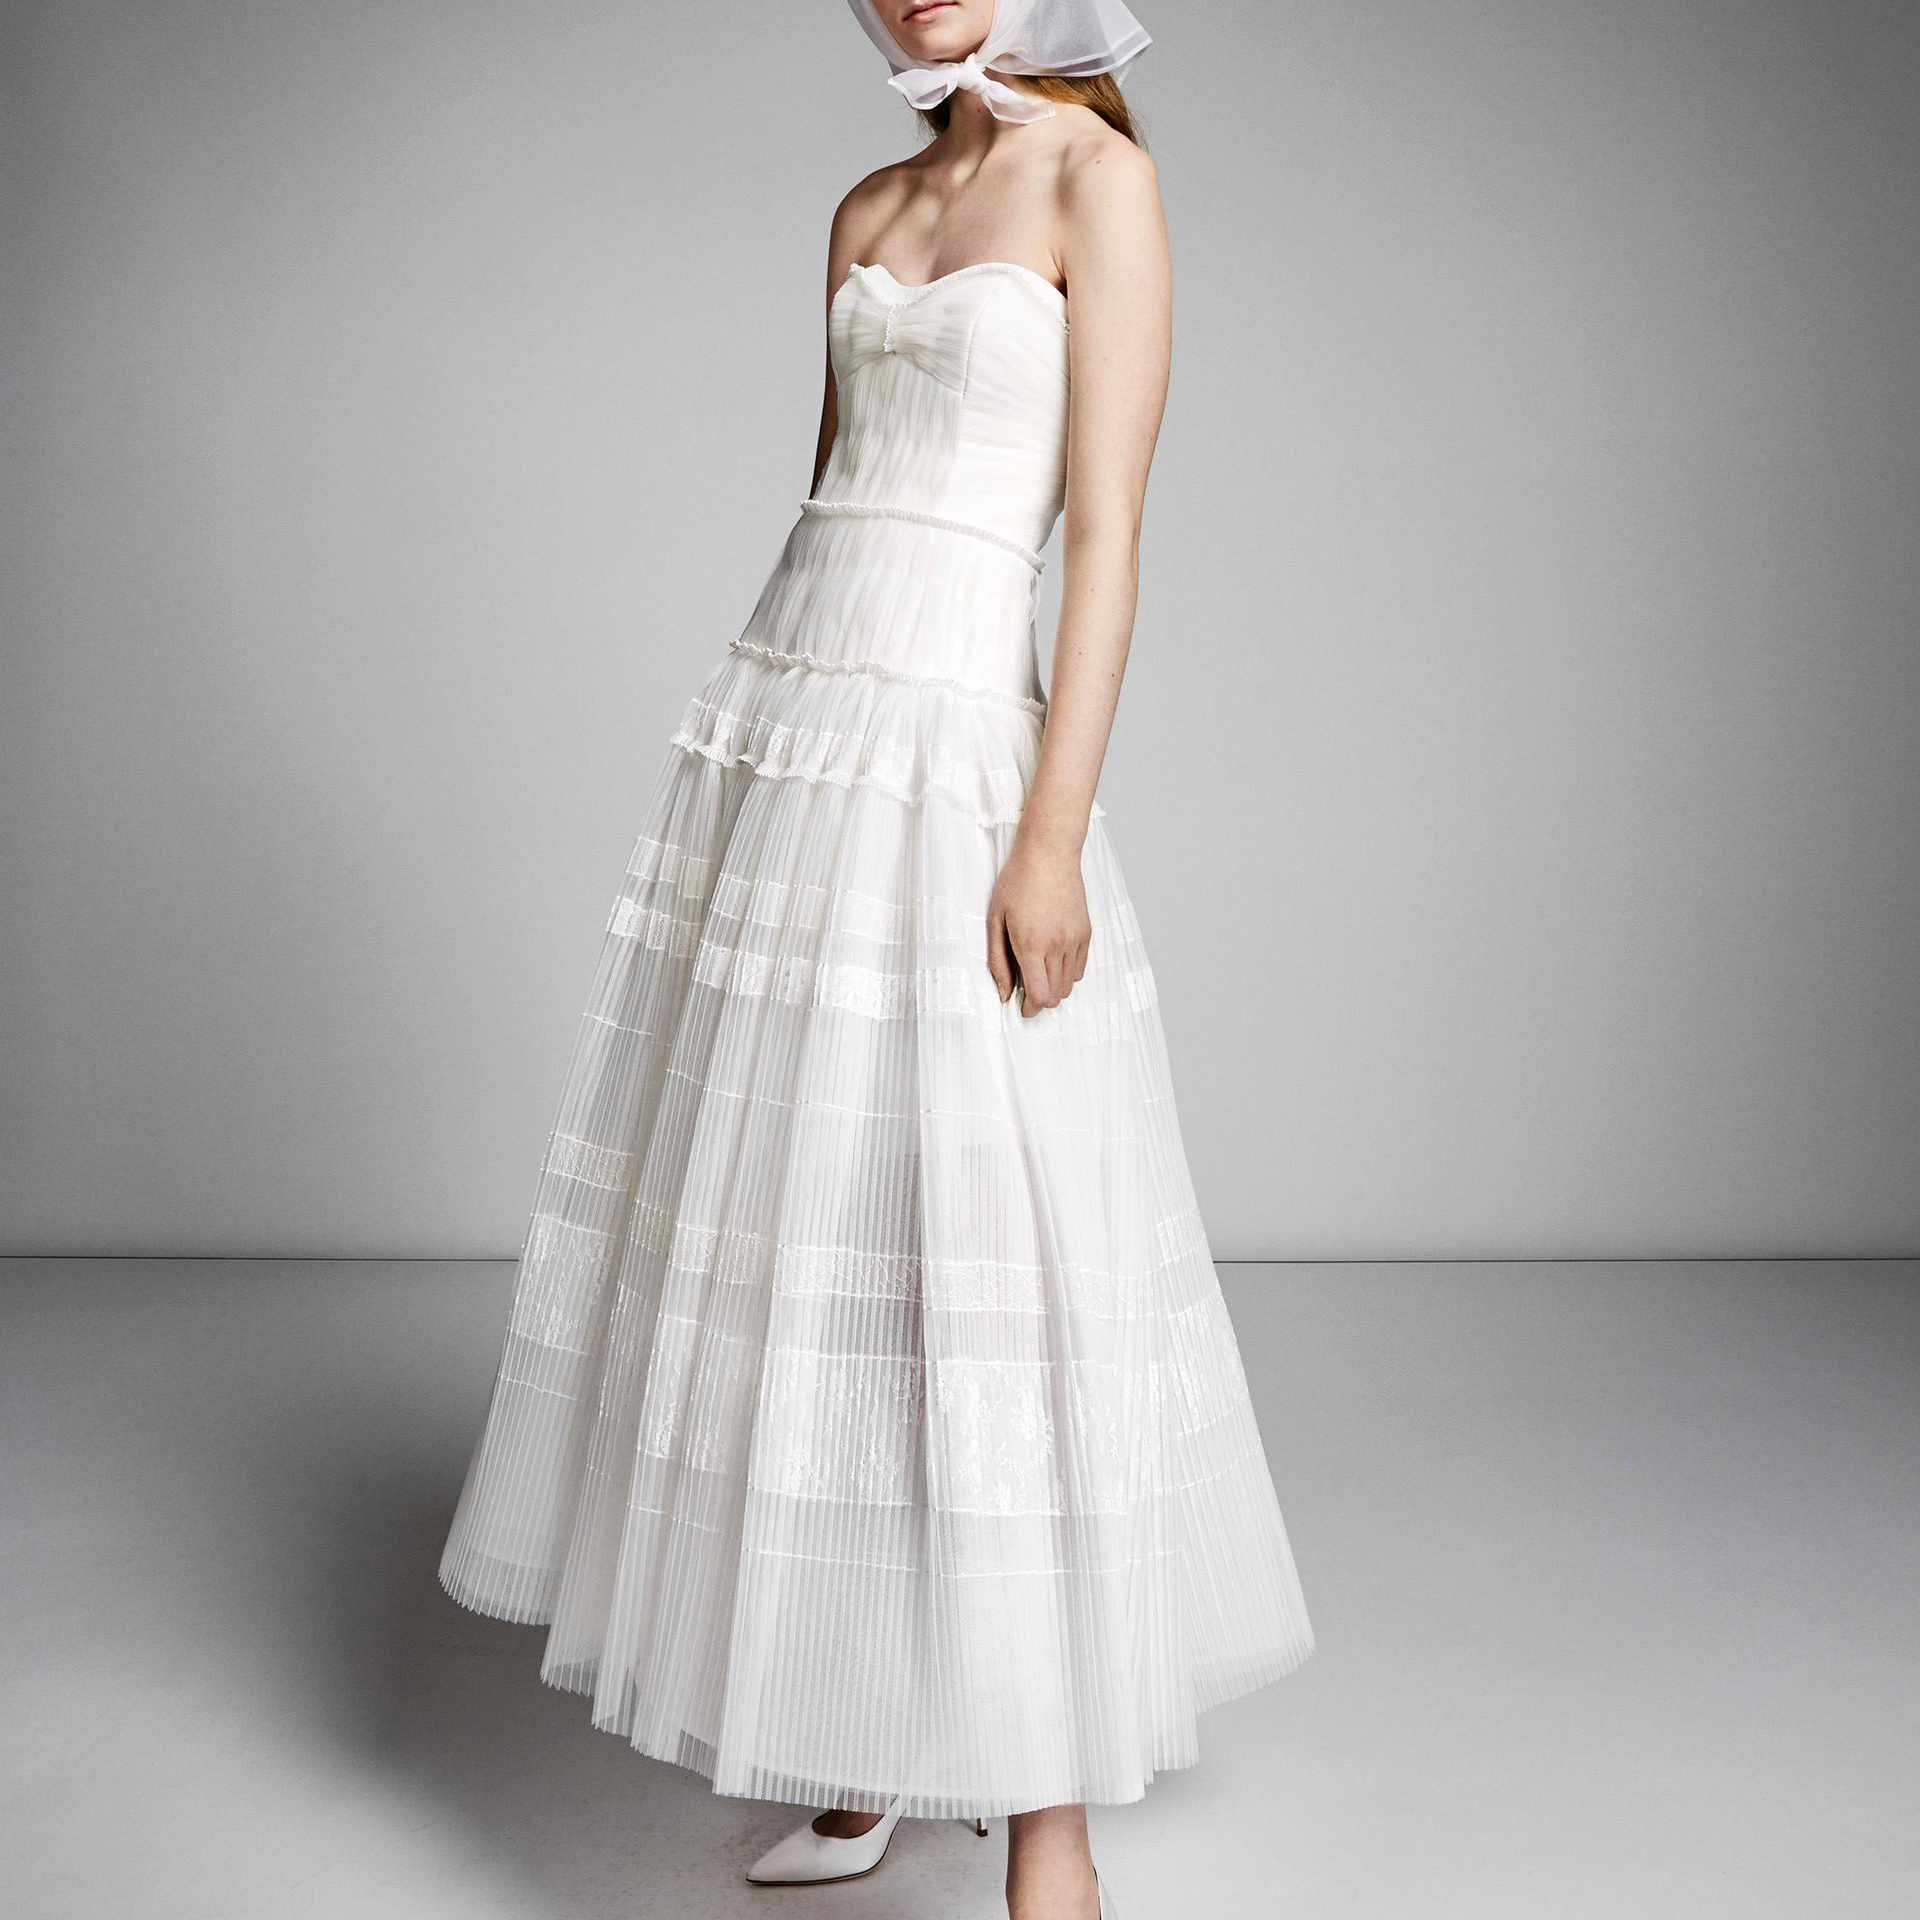 Viktor&Rolf Mariage Lace Applique Tea Length Gown, price upon request